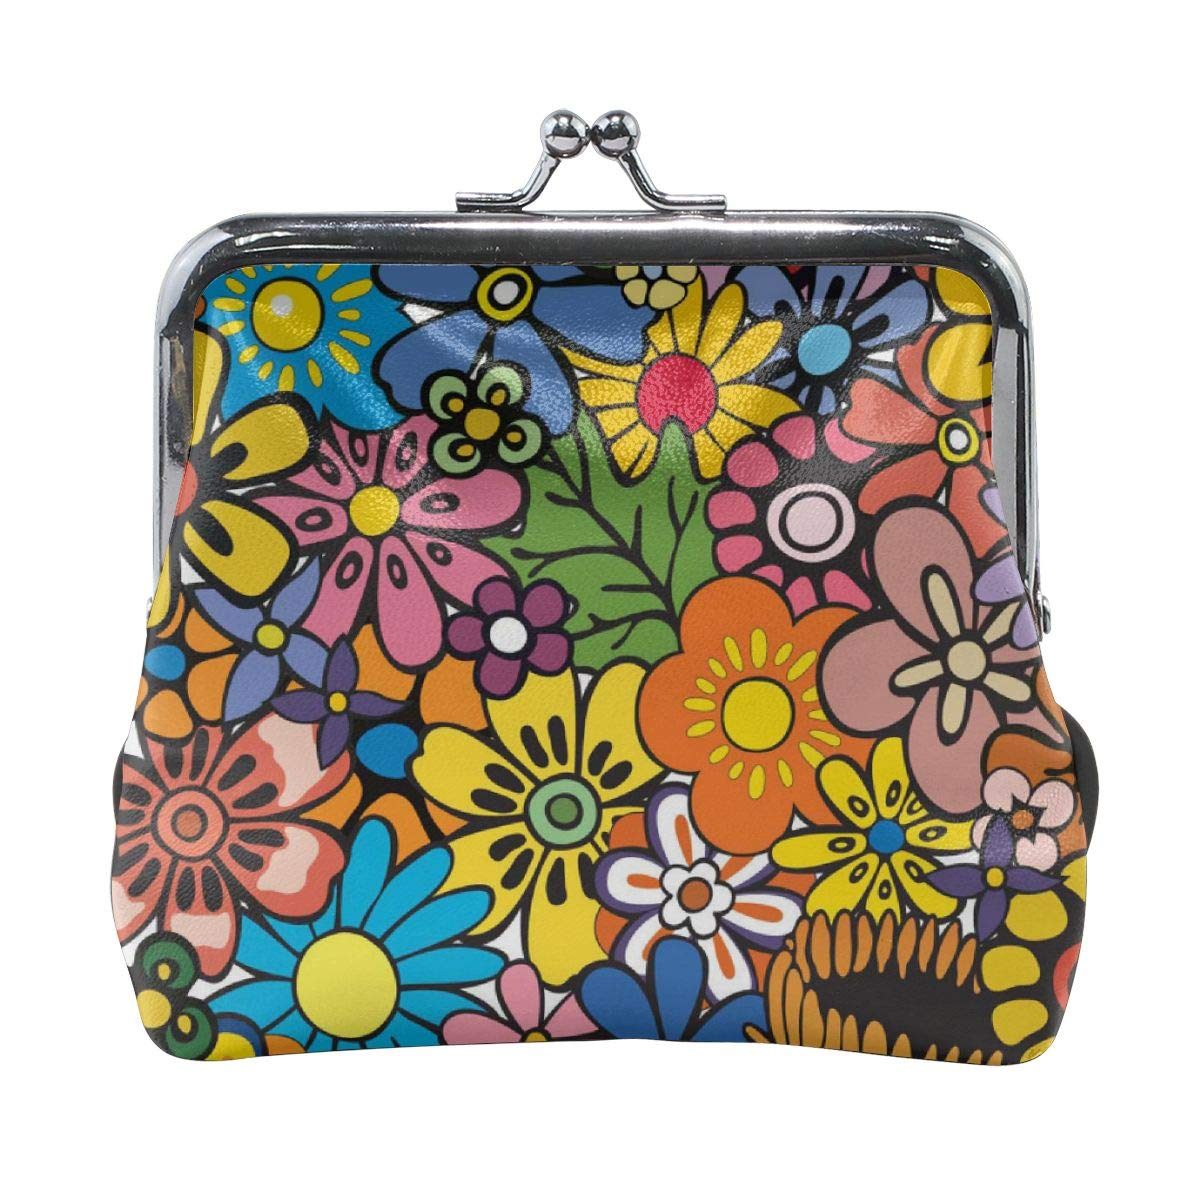 Exquisite Flower Pattern Credit Cards Buckle Coin Purse For Womens